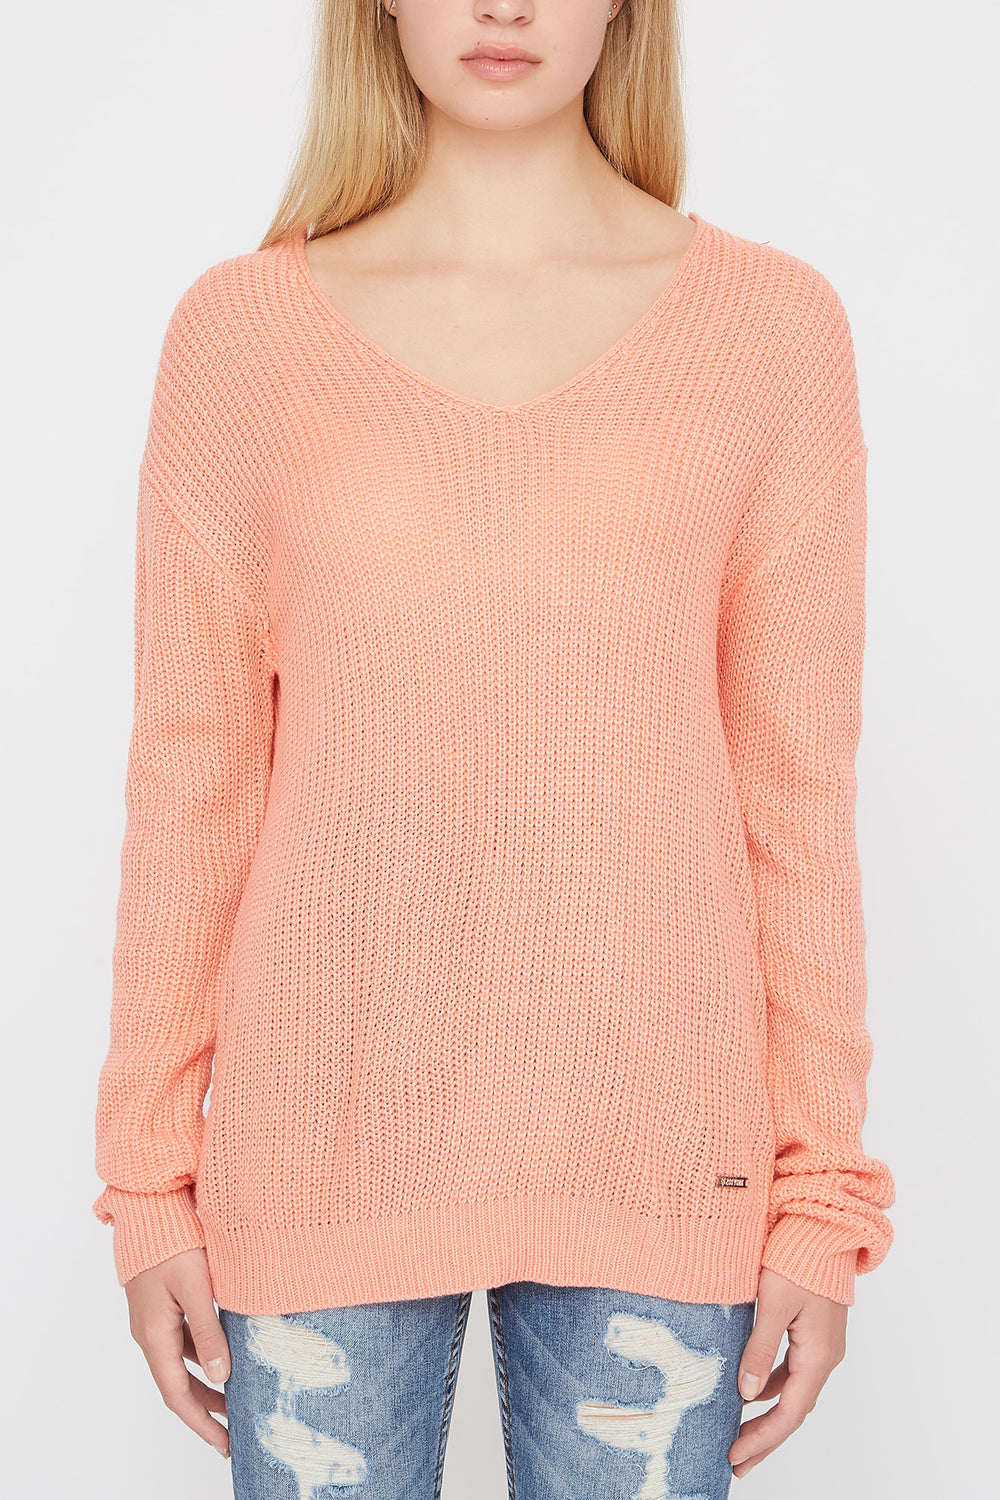 Zoo York Womens Knit Back Knot Sweater Peach